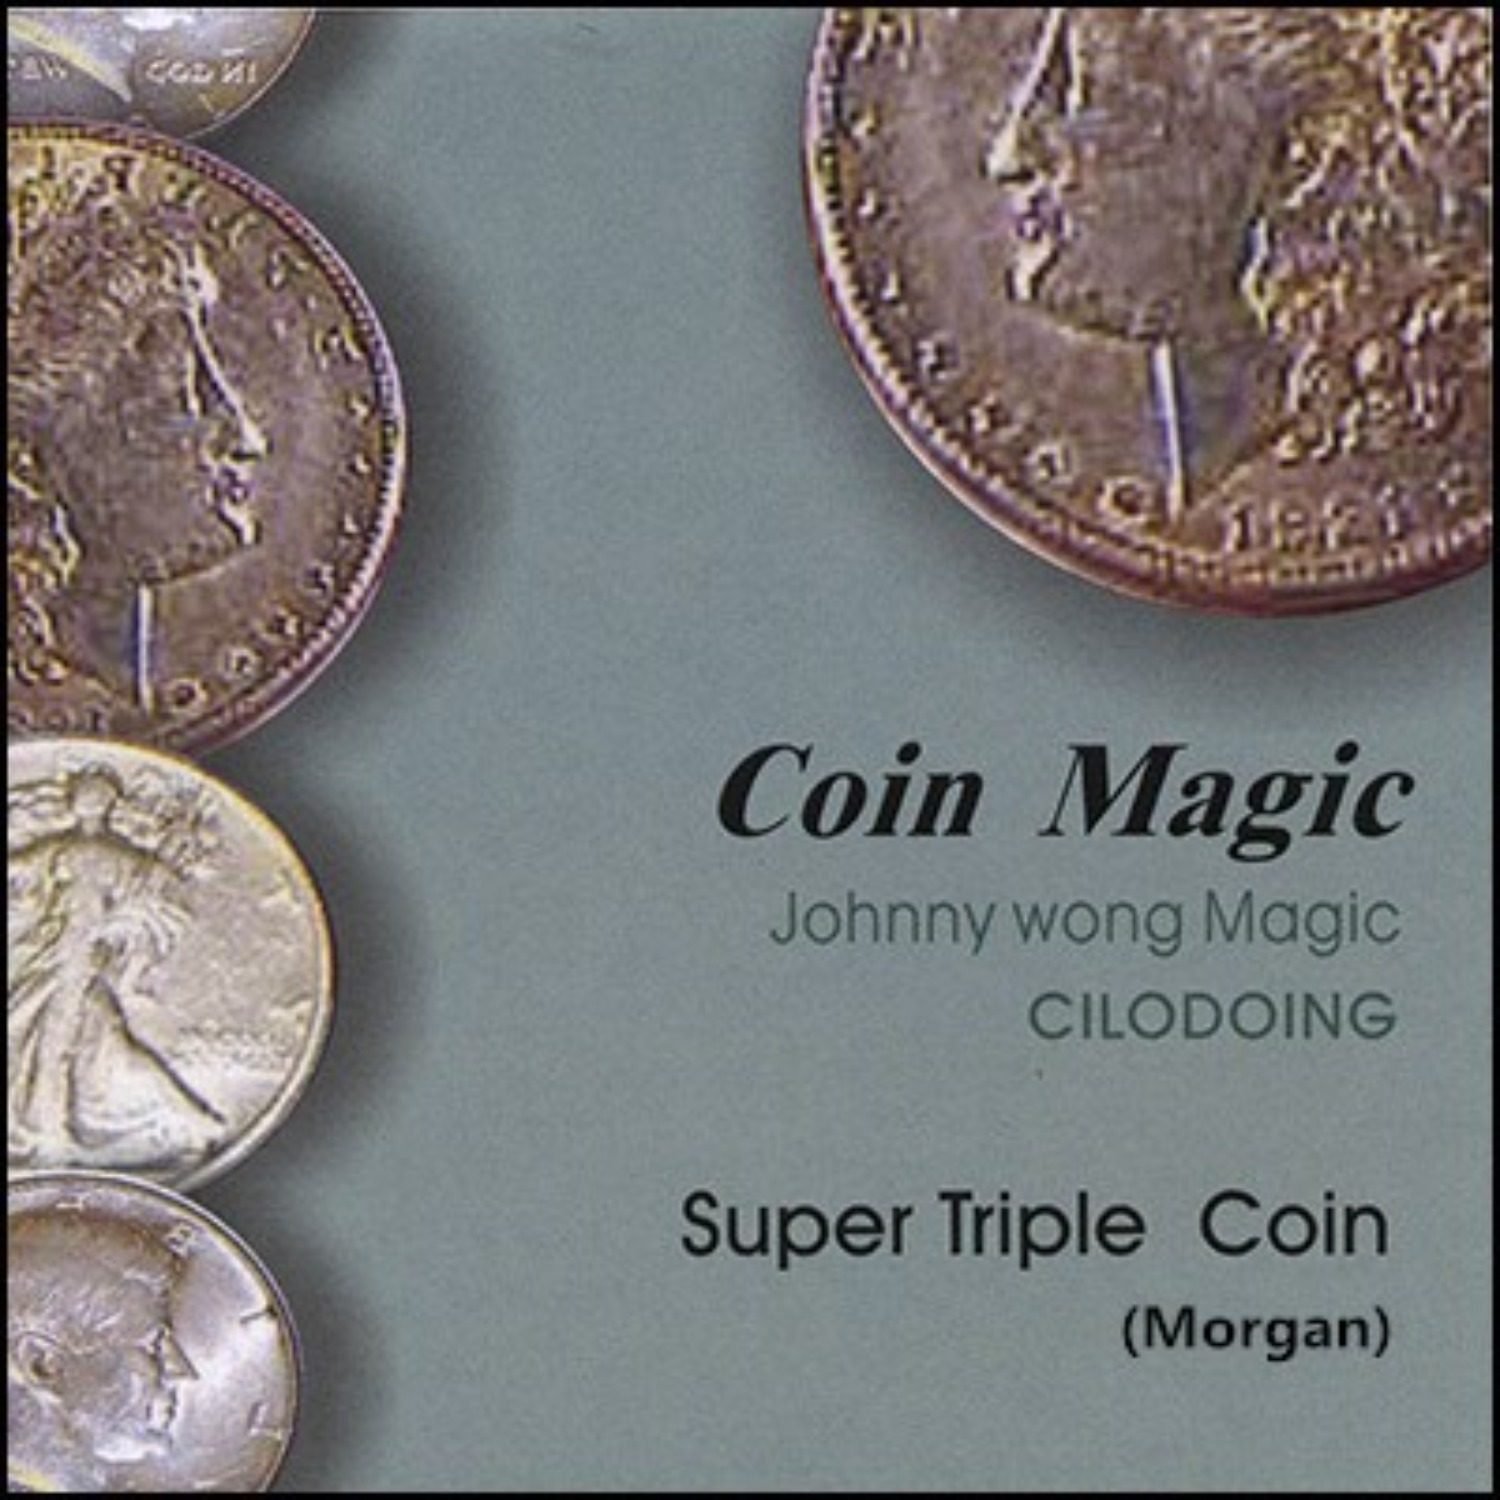 [수퍼트리플코인/모건달러]Super Triple Coin (Morgan Dollar, with DVD) by Johnny Wong